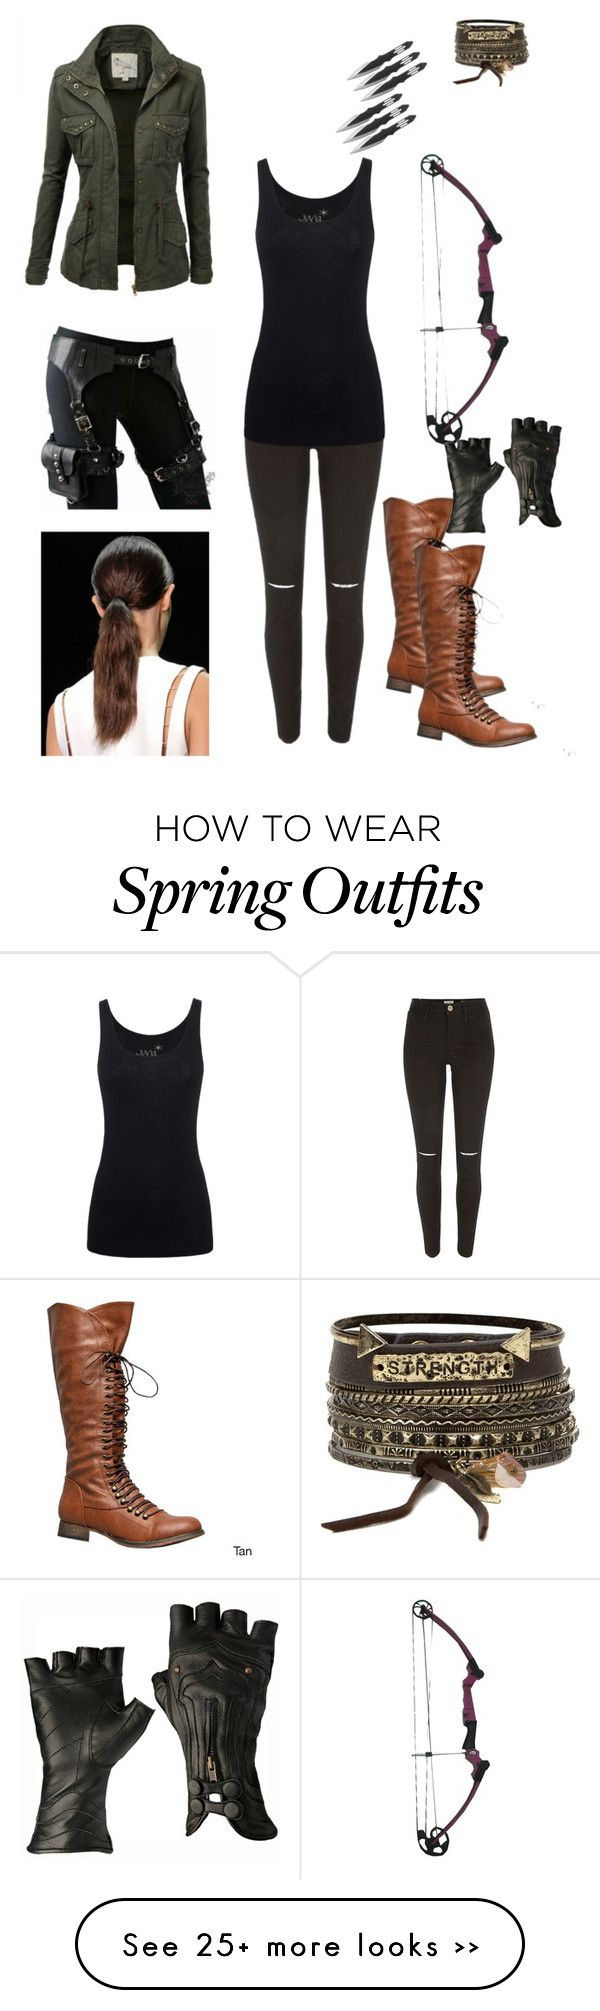 """""""My outfit if I was in maze runner"""" by lopezfamily-1 on Polyvore featuring River Island, Juvia, J.TOMSON and BKE"""